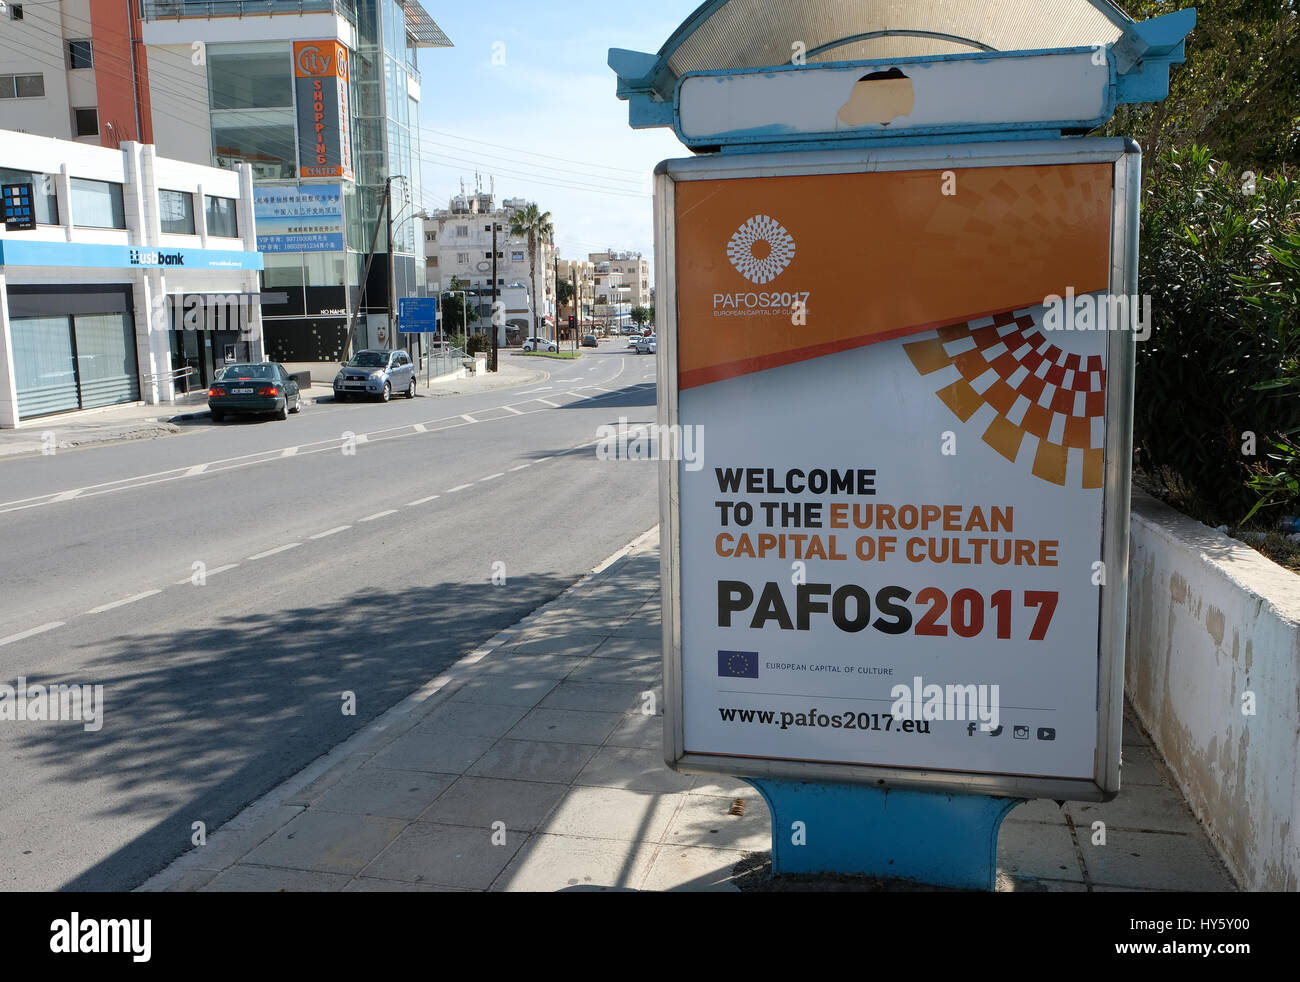 Paphos European Capital of Culture 2017 Sign in Paphos Cyprus - Stock Image